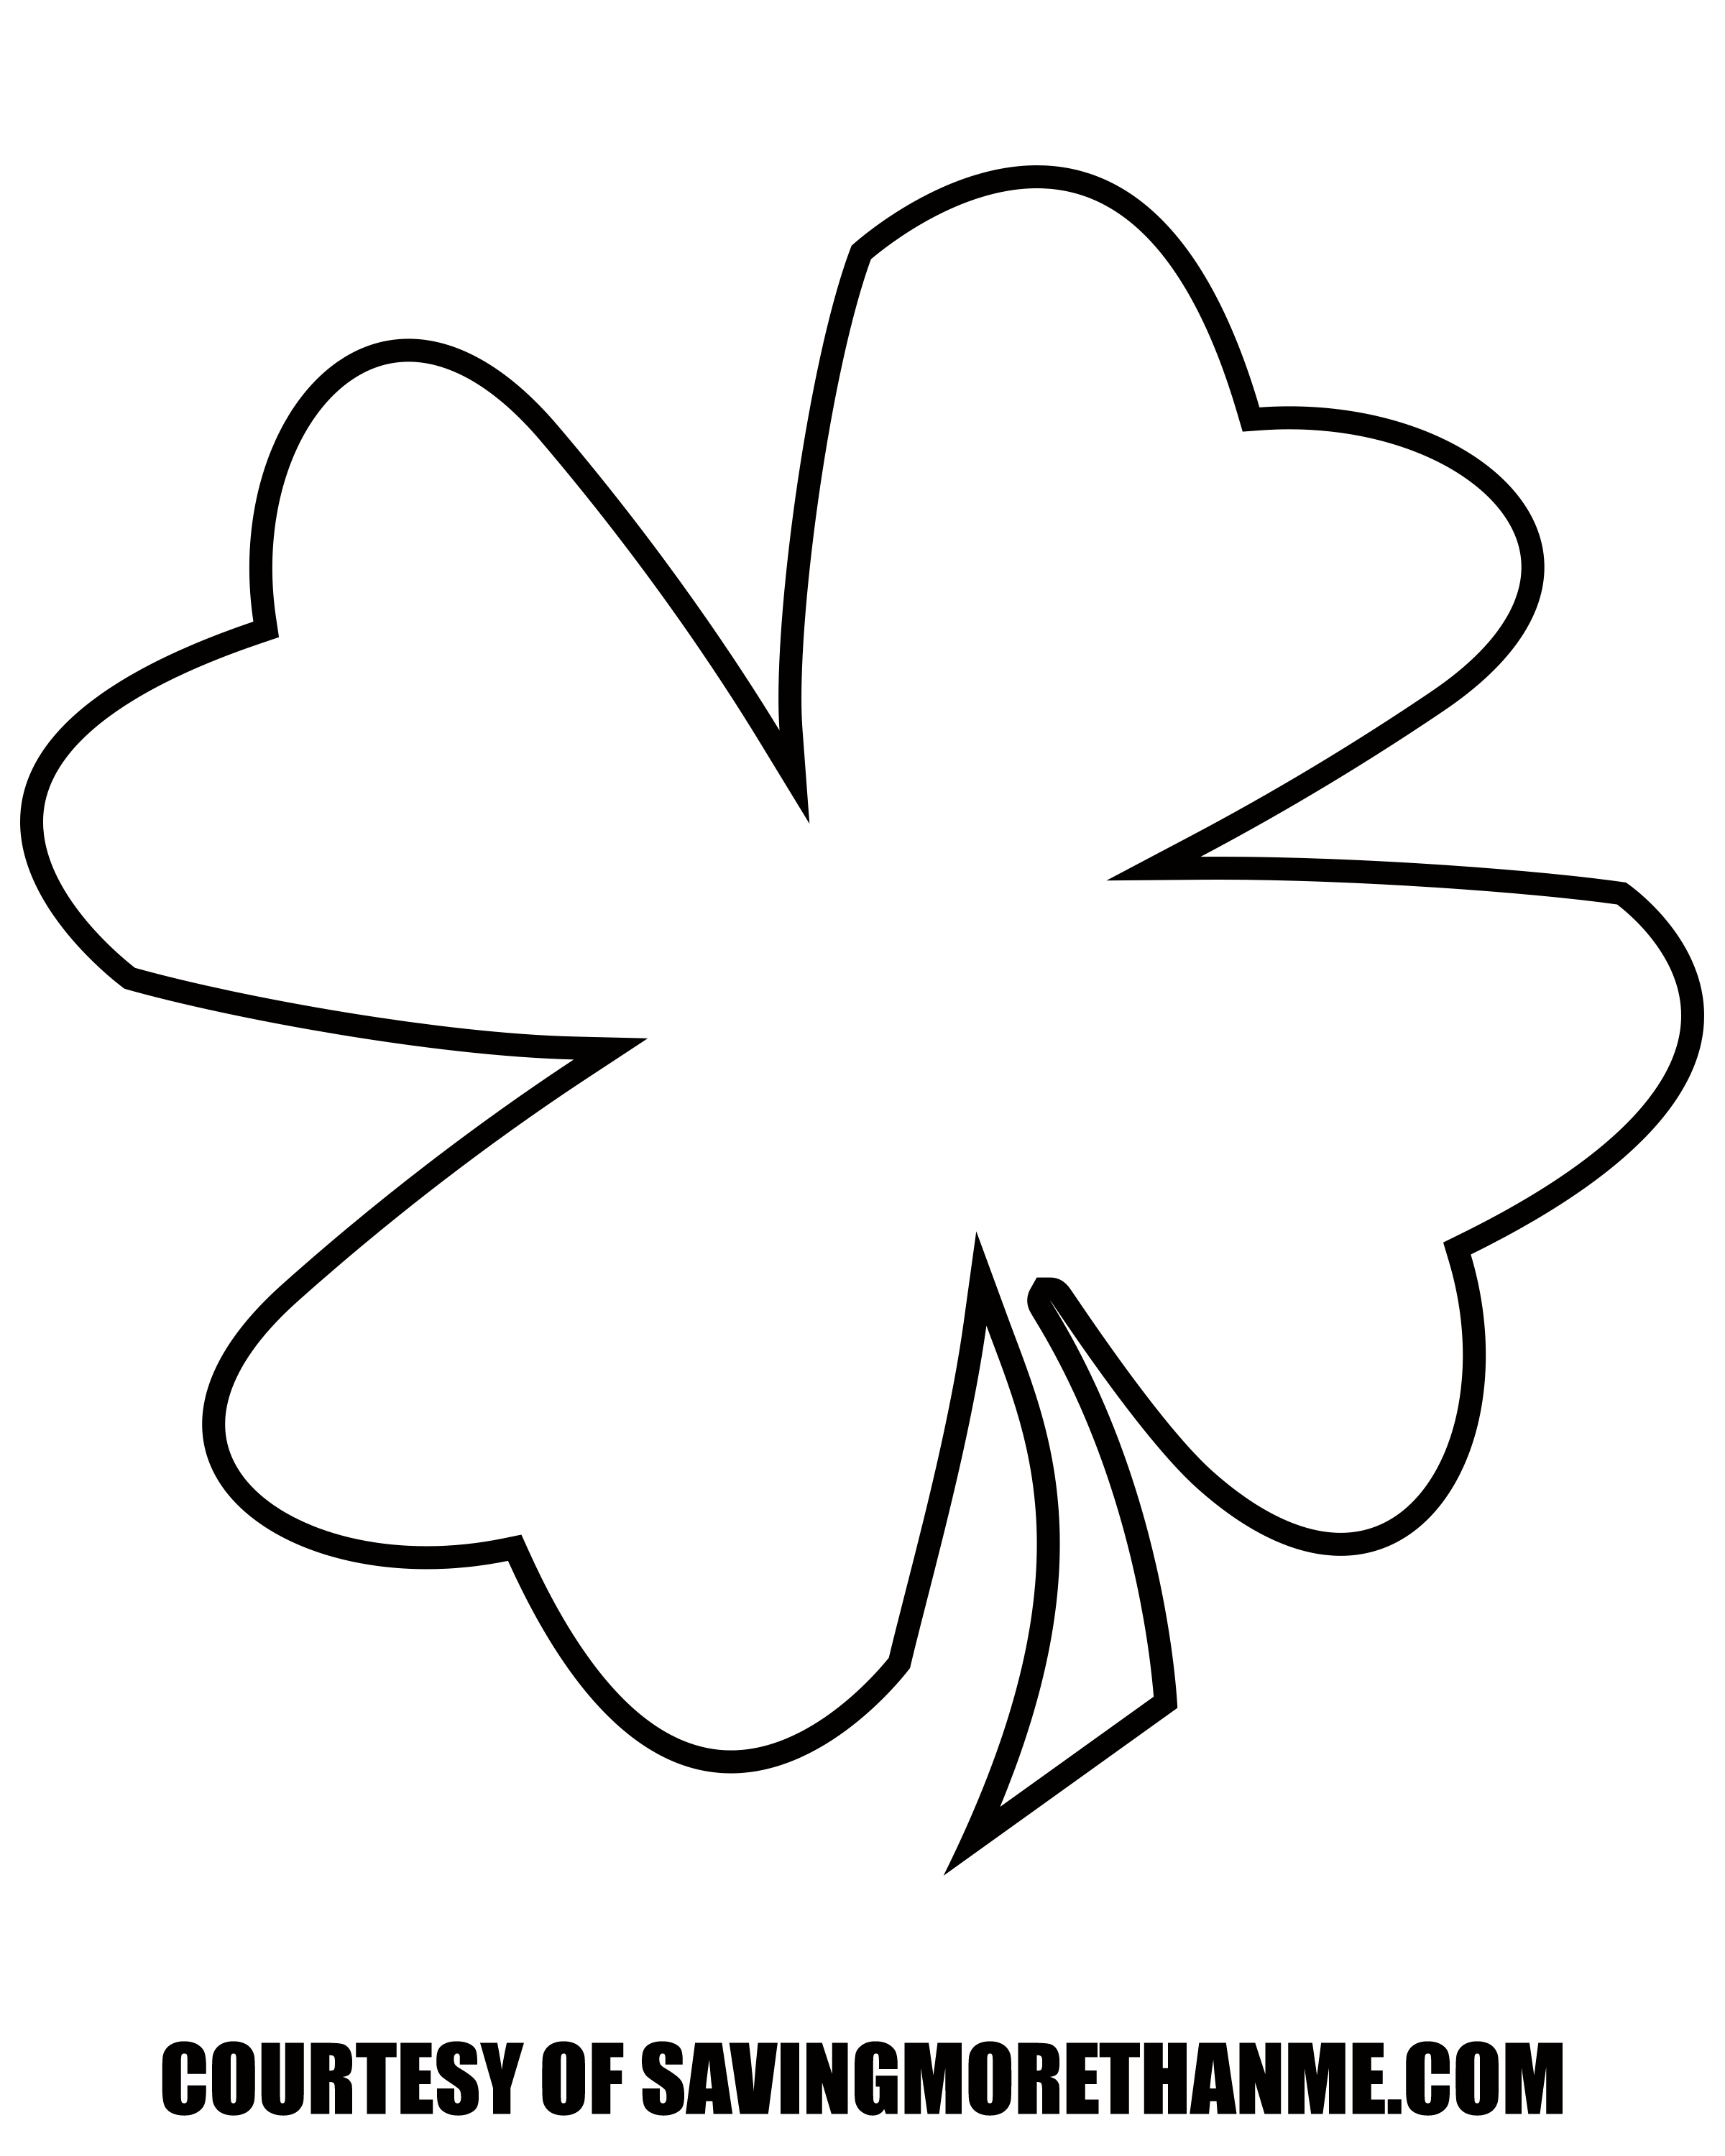 how to draw a 4 leaf clover four leaf clover drawing coloring book clip art png a how clover 4 draw to leaf